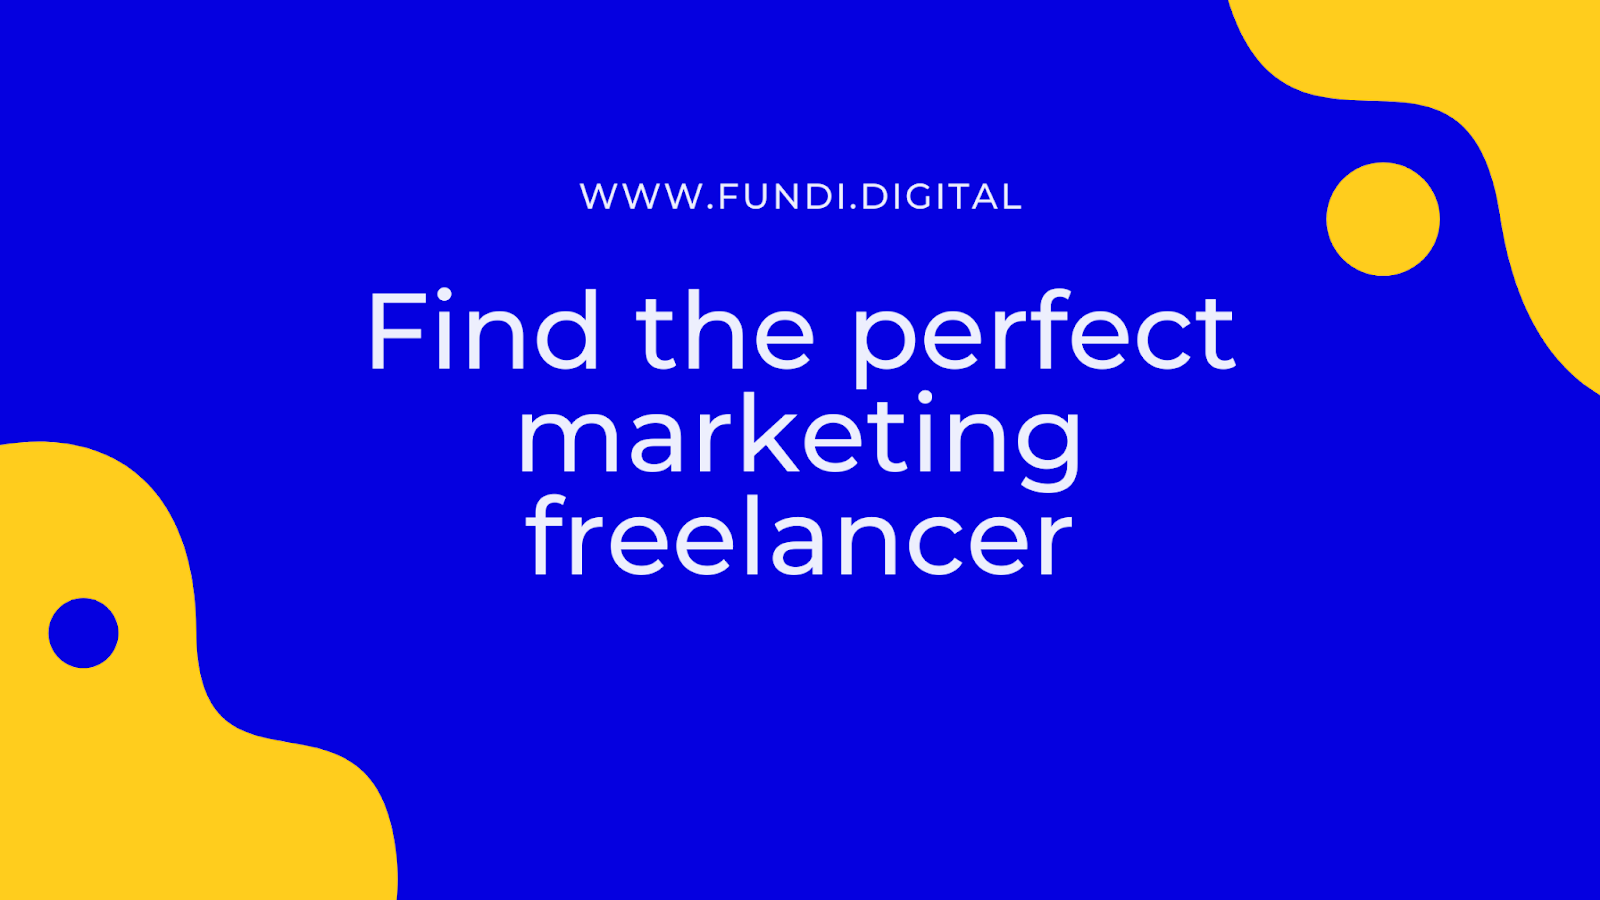 Find the perfect marketing freelancer